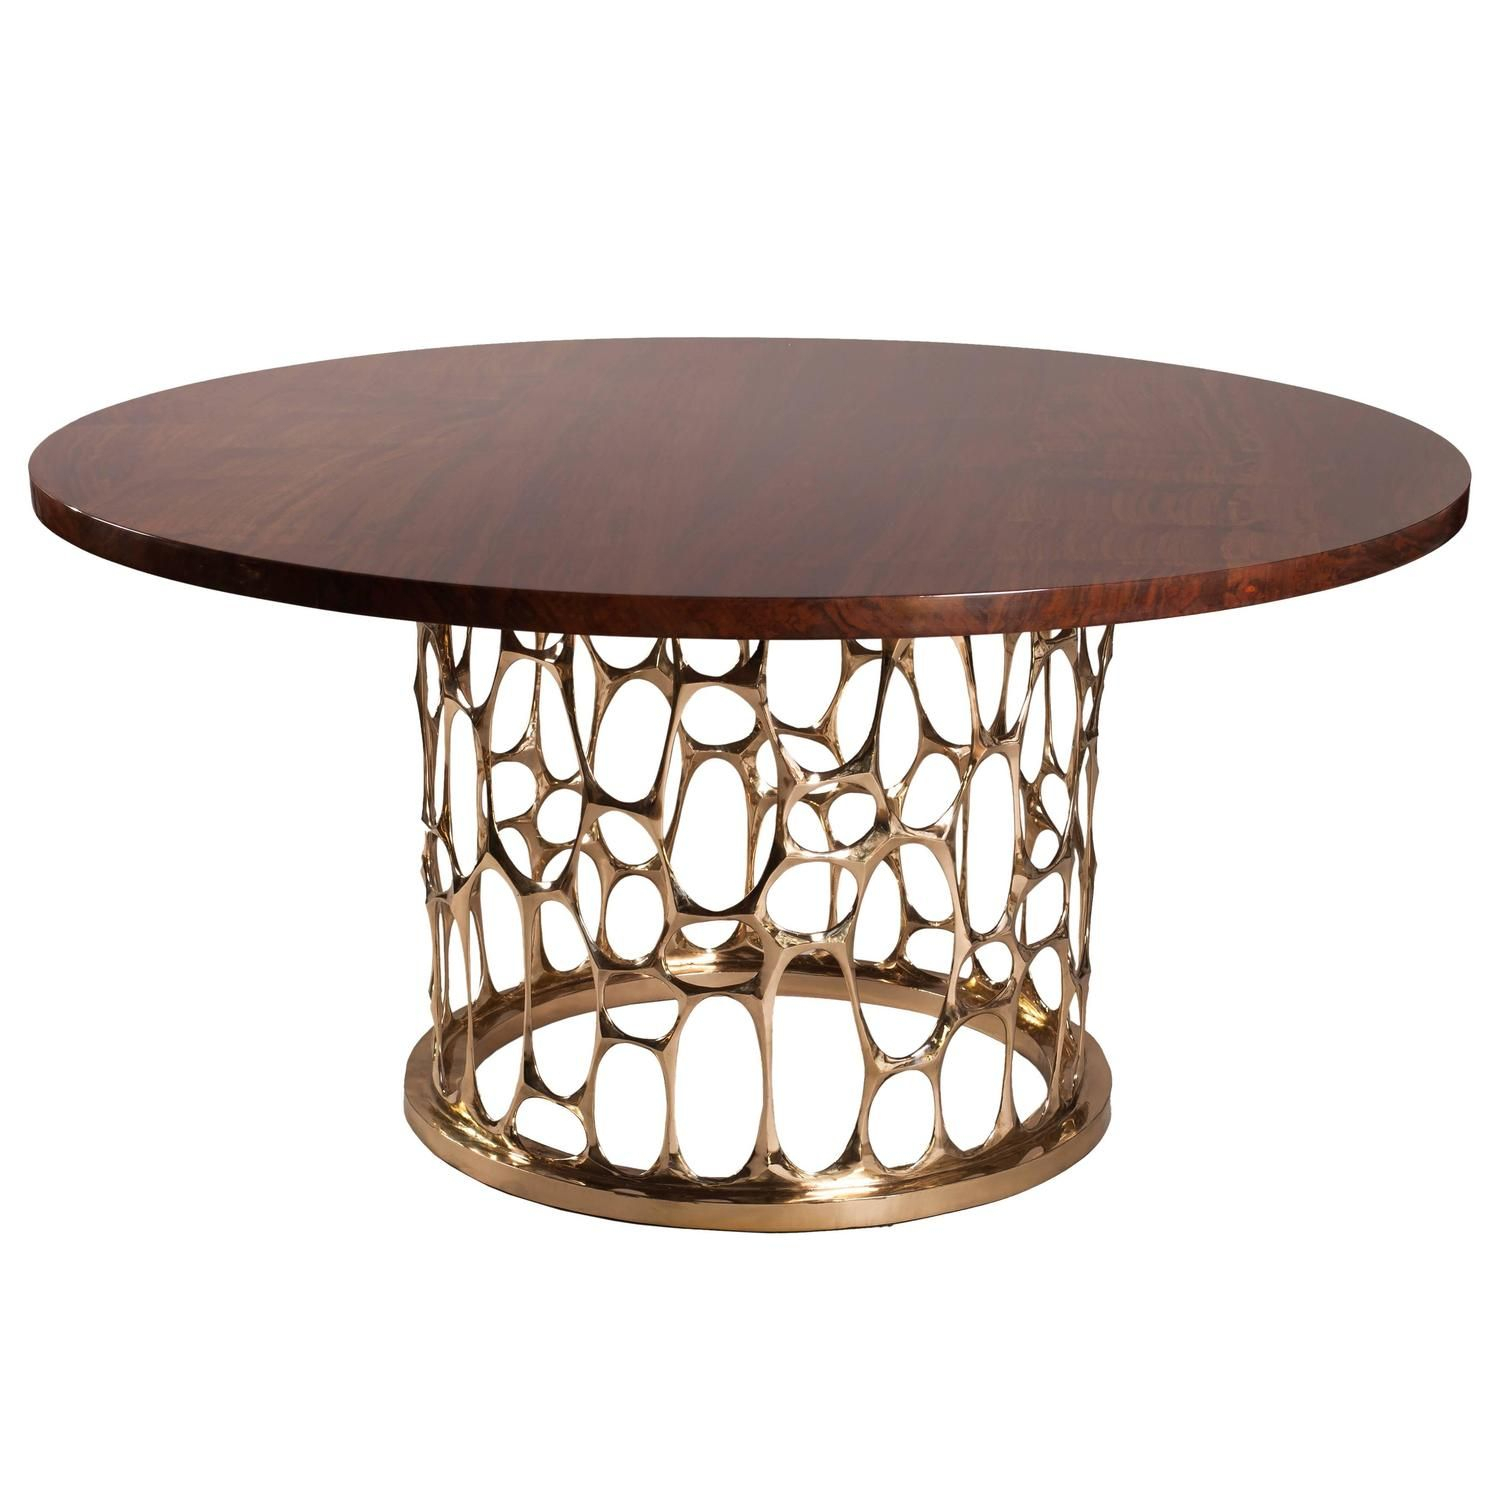 Pineric On 餐桌 | Dining Table, Table, Modern Dining Inside Most Popular Aztec Round Pedestal Dining Tables (View 19 of 25)